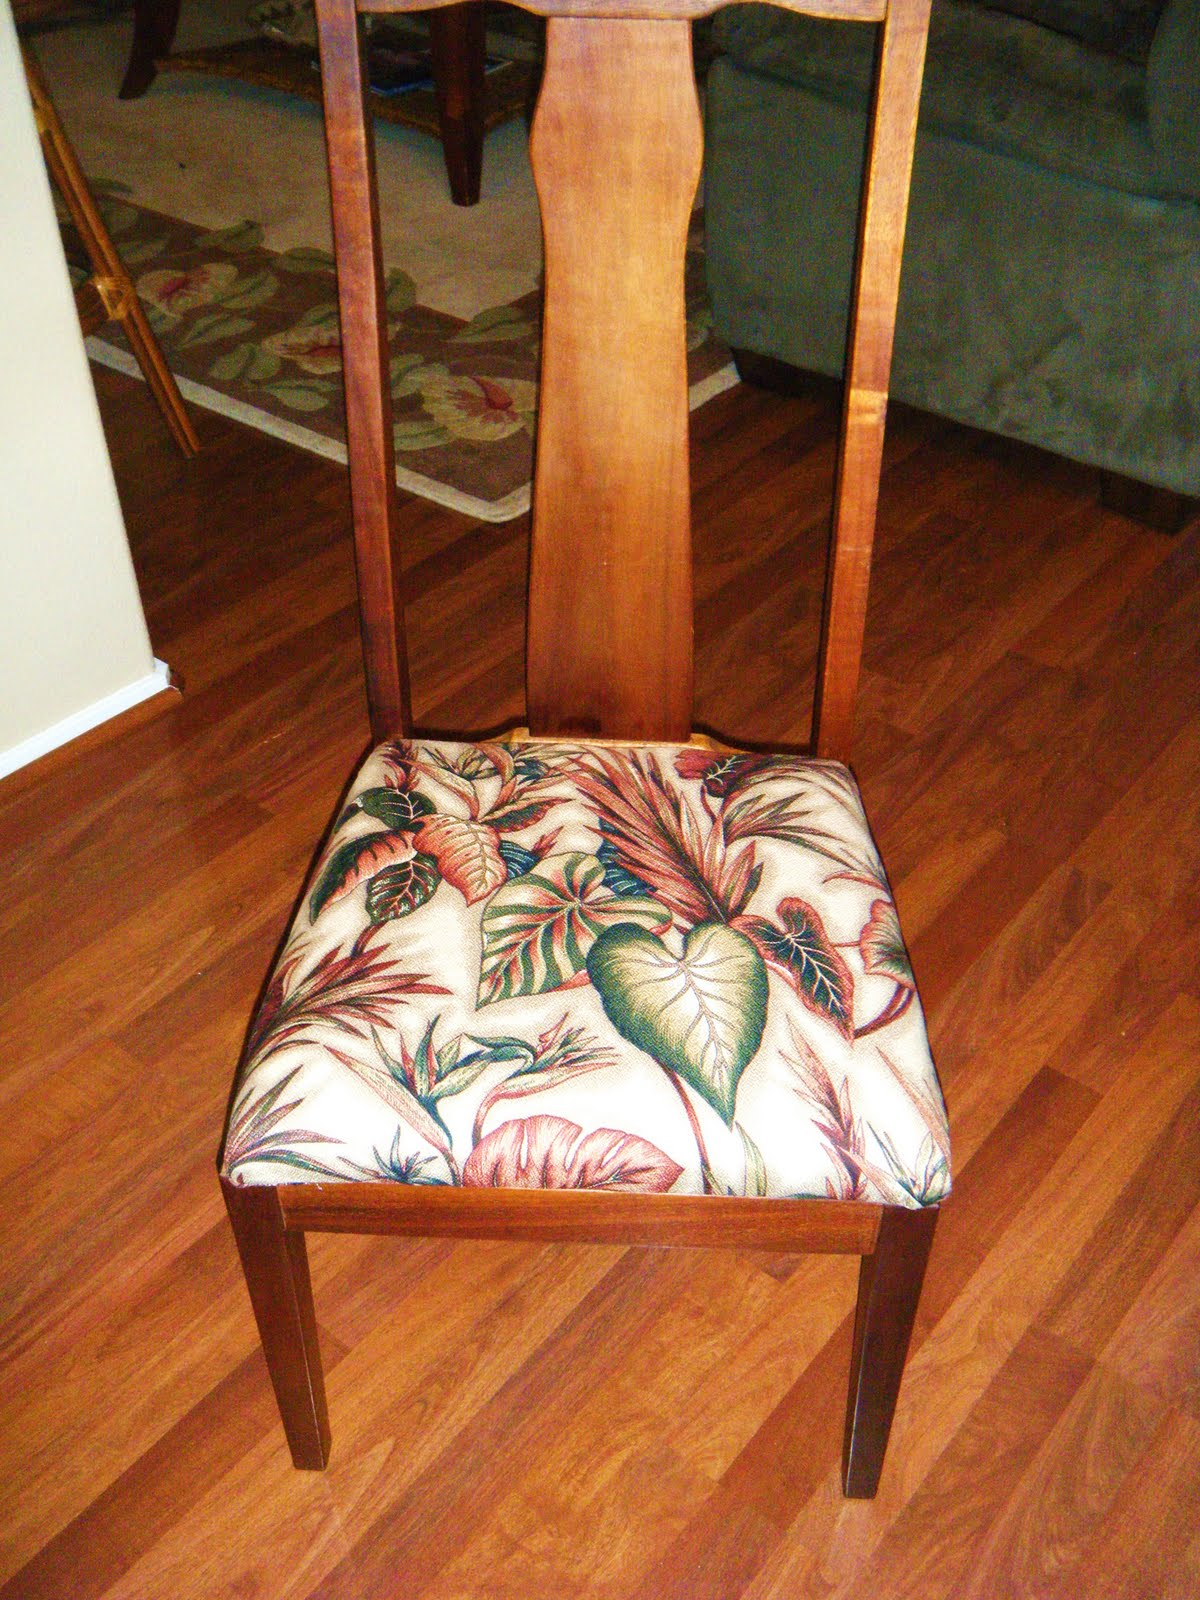 Reupholster Chair Cushions Chair Pads Amp Cushions